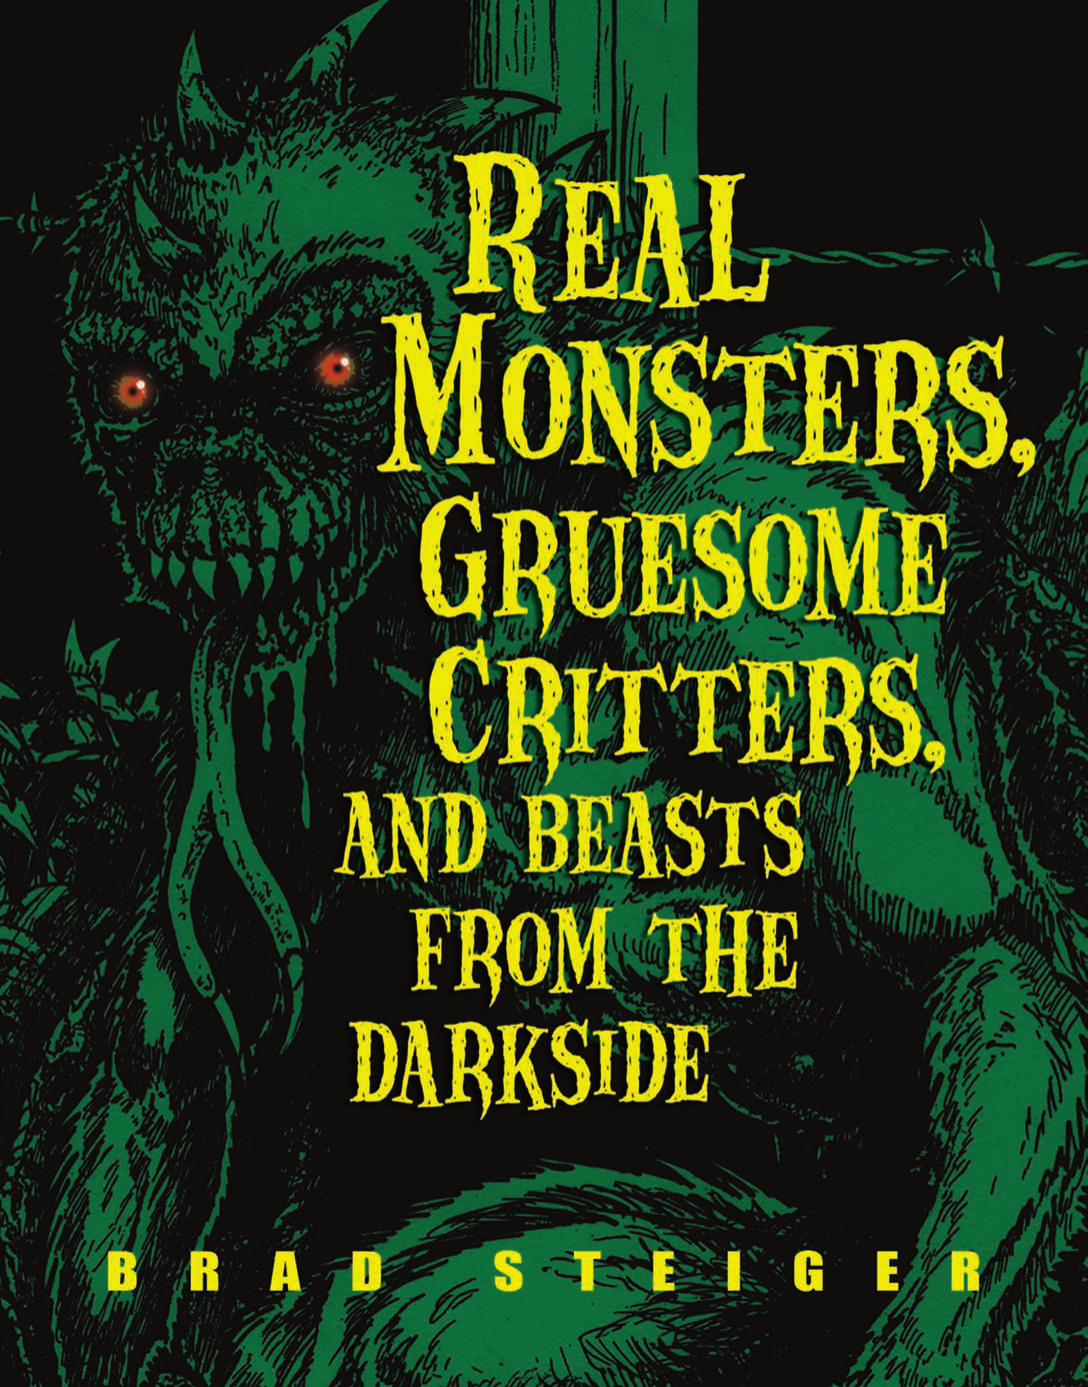 Brad Steiger Real Monsters Gruesome Critters And Beasts